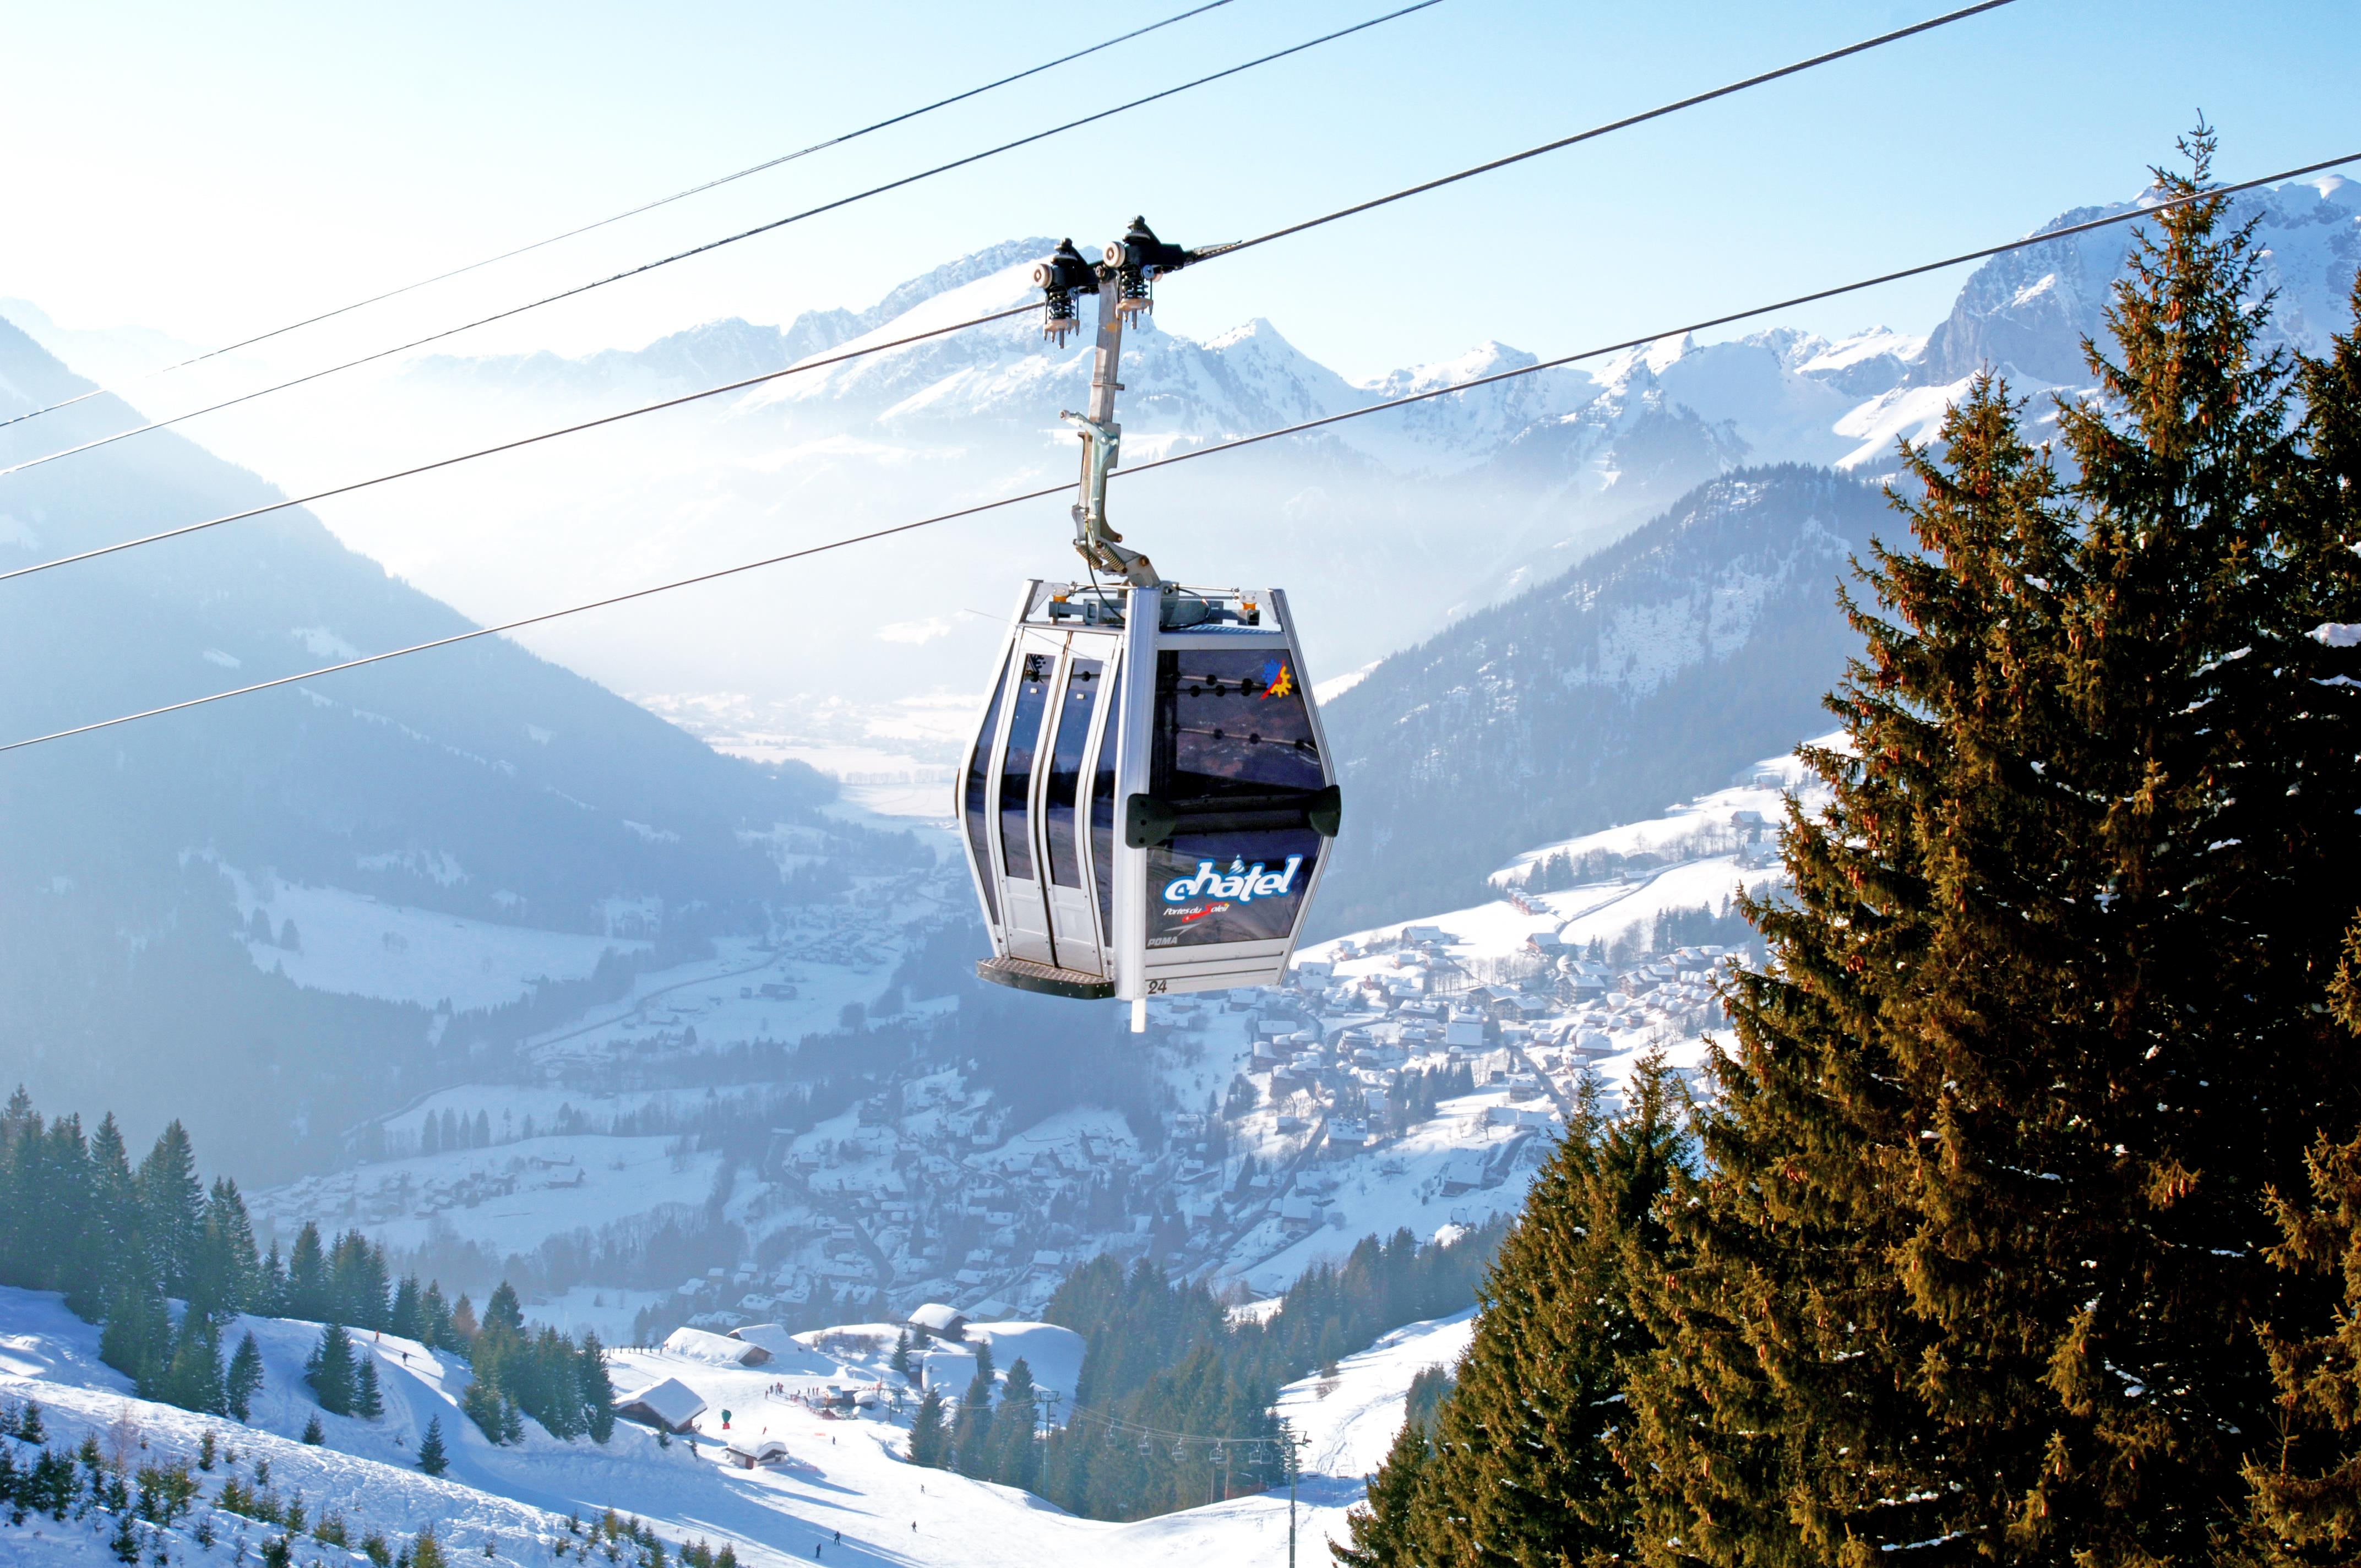 Chatel Ski Slopes © (Vuarand)